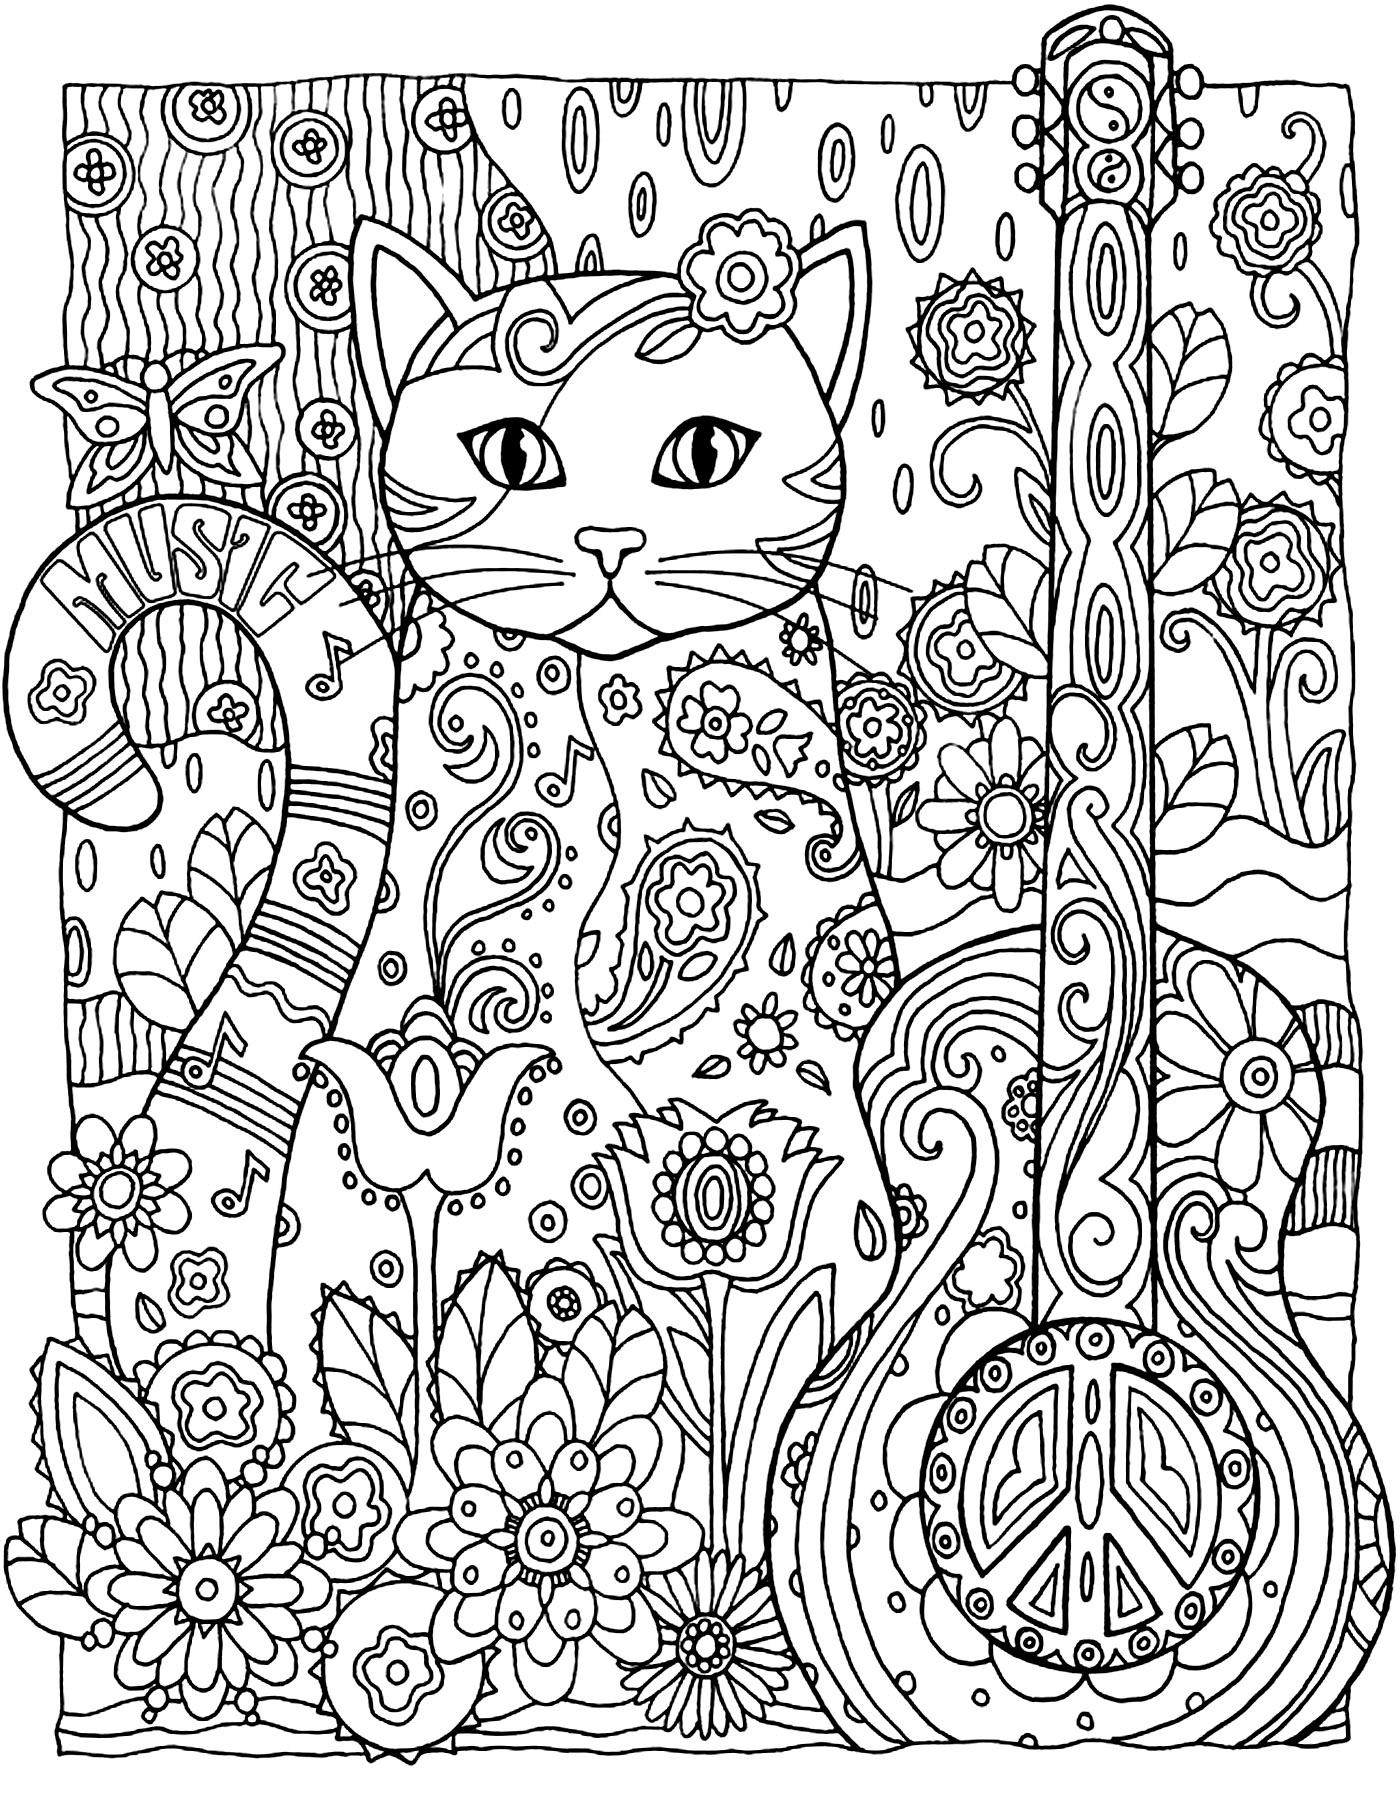 Cat Guitar Cats Coloring Pages For Adults Justcolor